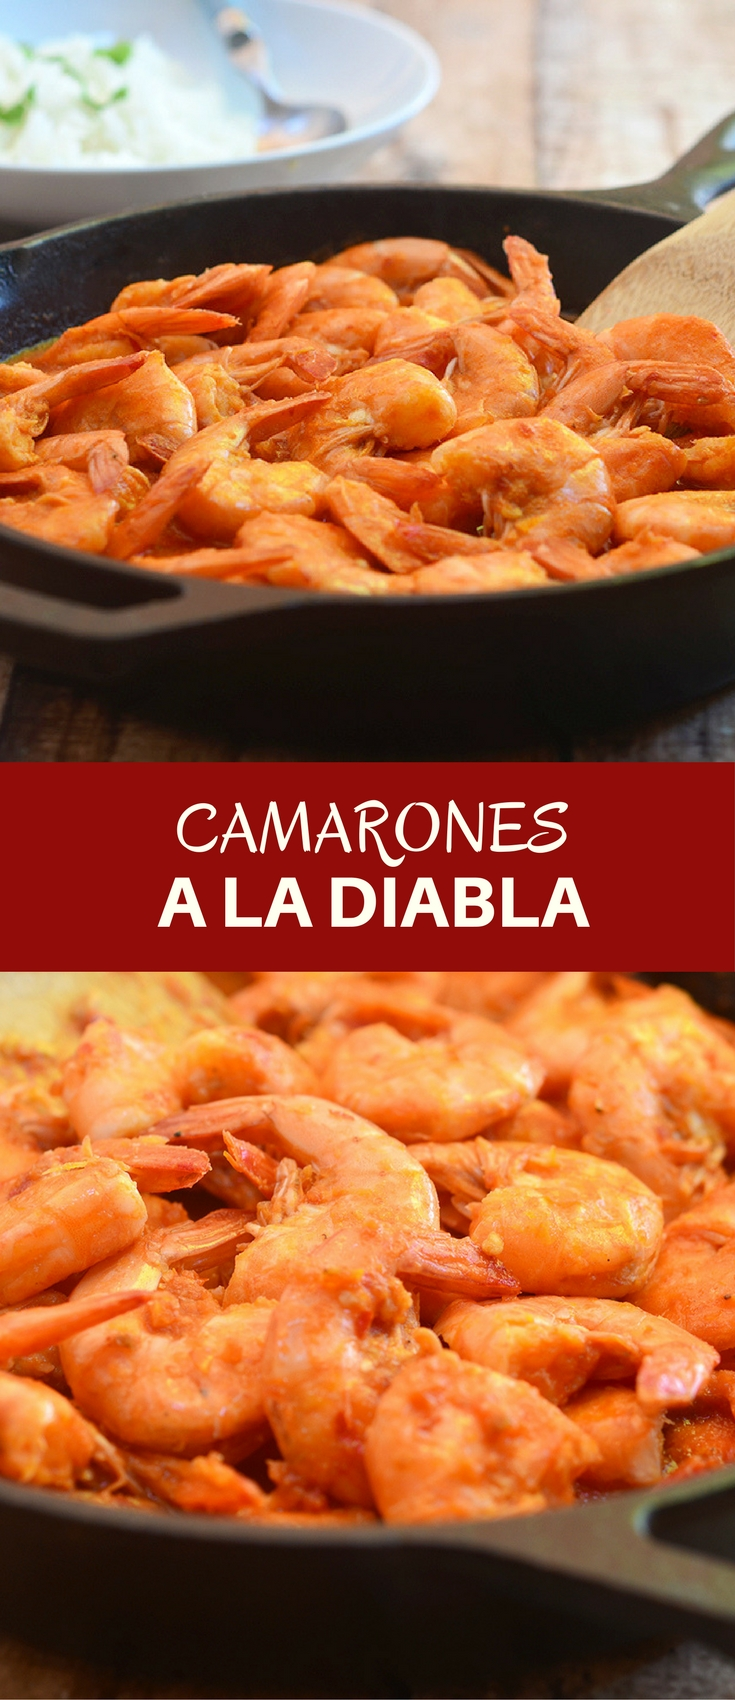 "Camarones a la Diabla cooked a fiery, smoky pepper sauce are sure to rock your taste buds. Also called ""deviled shrimps"", they're loaded with big, bold flavors you'll love."